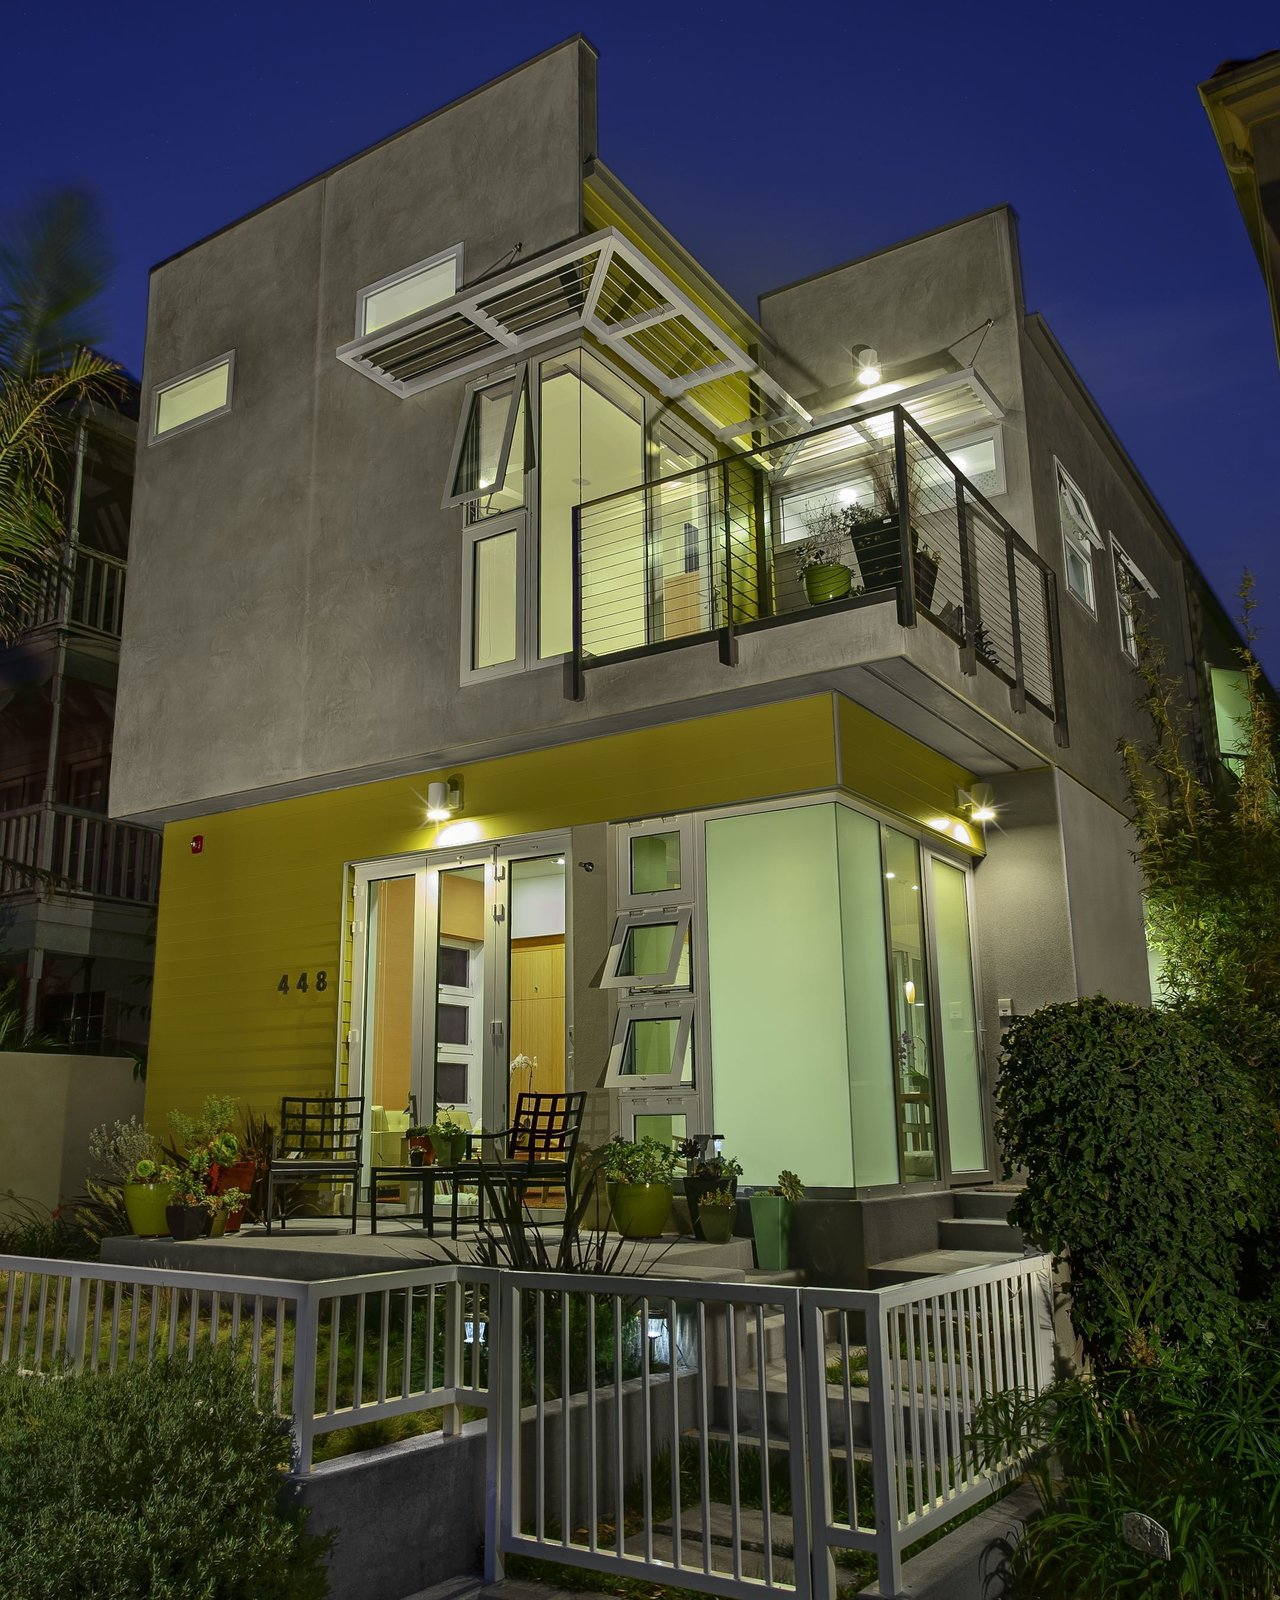 A view of the house from the front. Photo by Ken Pagliaro Photography.